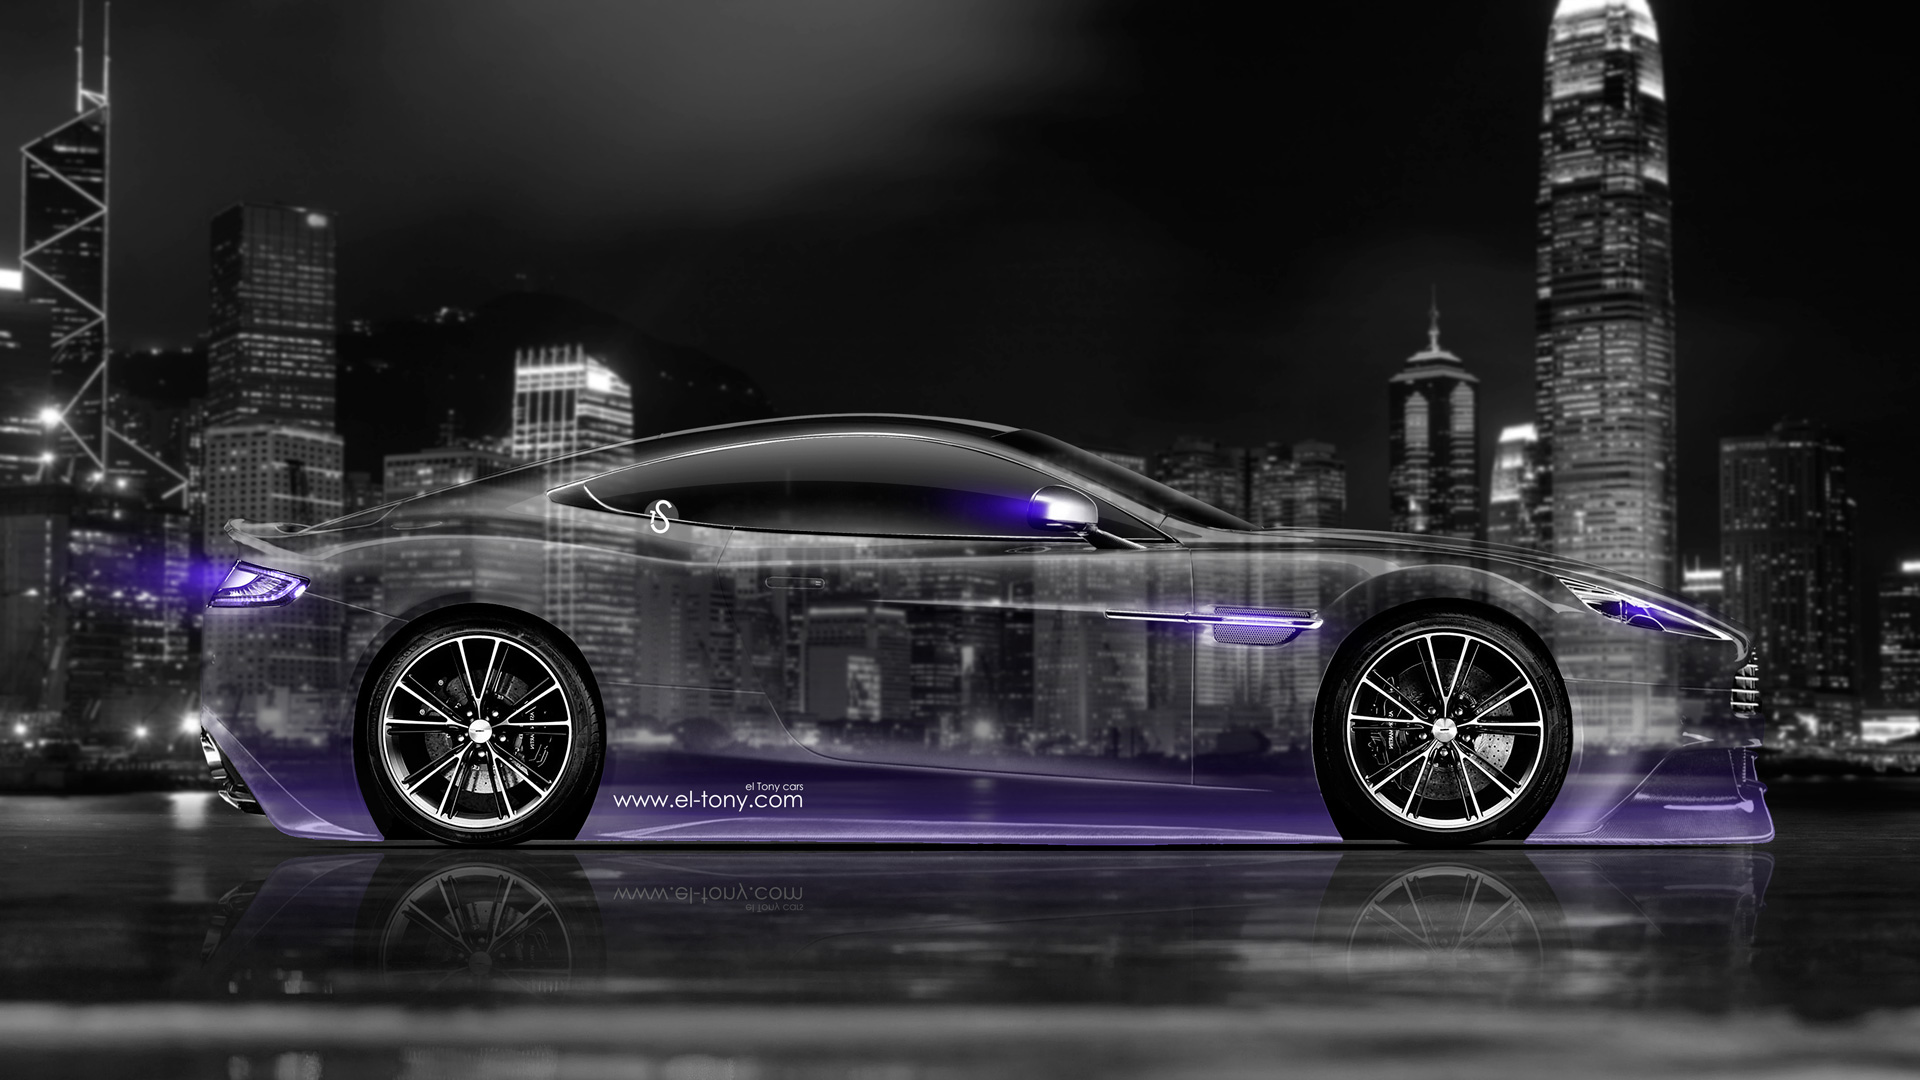 Charmant Aston Martin Vanquish Side Crystal City Car 2014